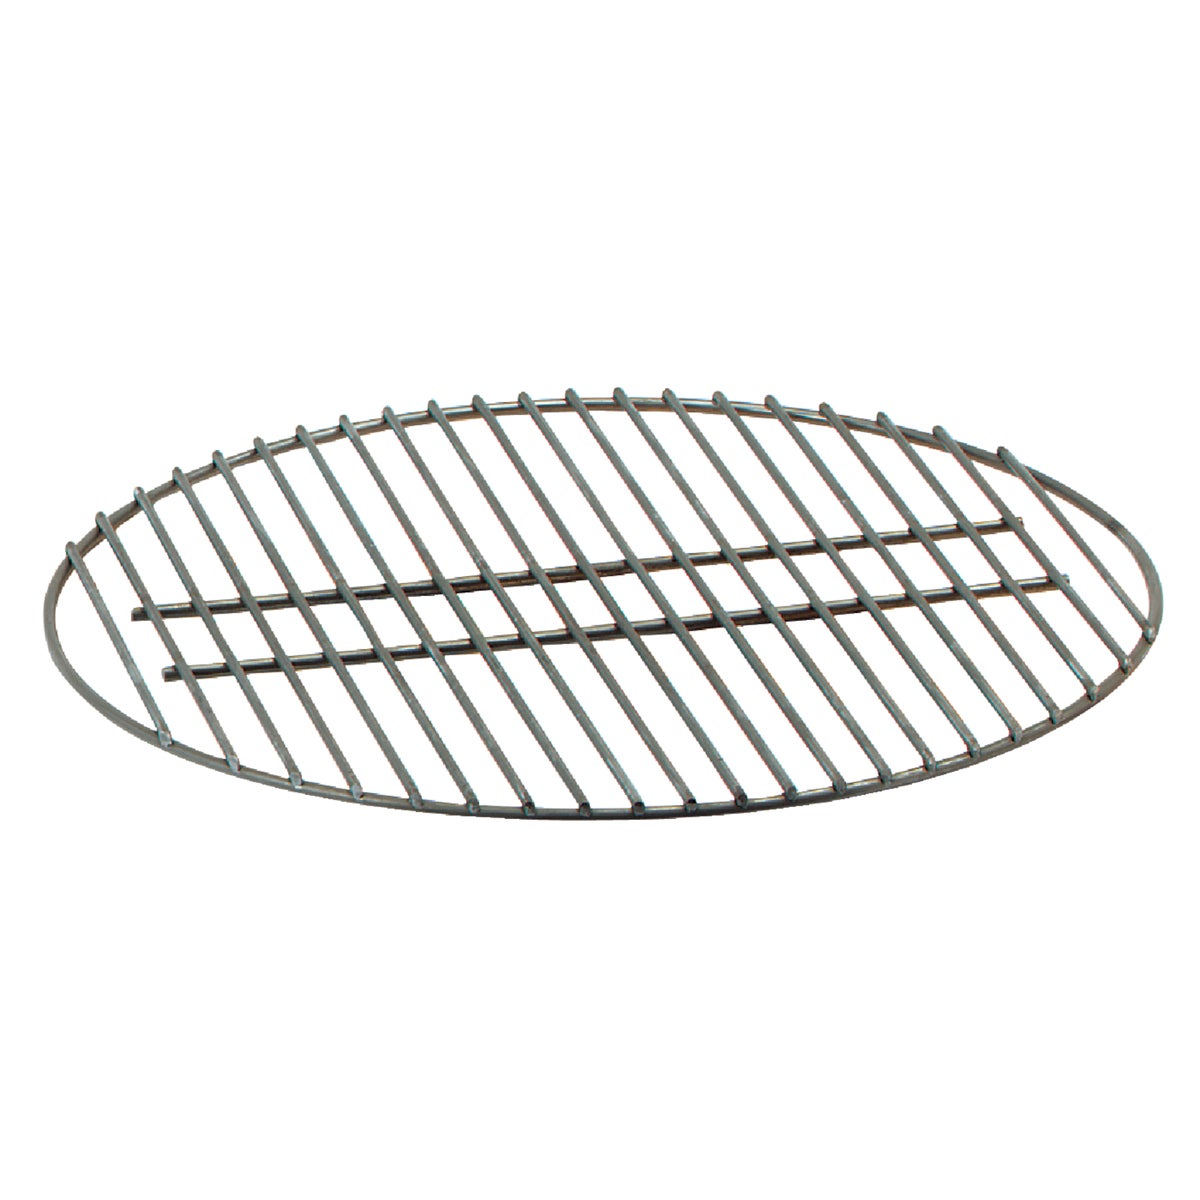 "22.5""REPL CHARCOAL GRATE - 7441 by Weber"